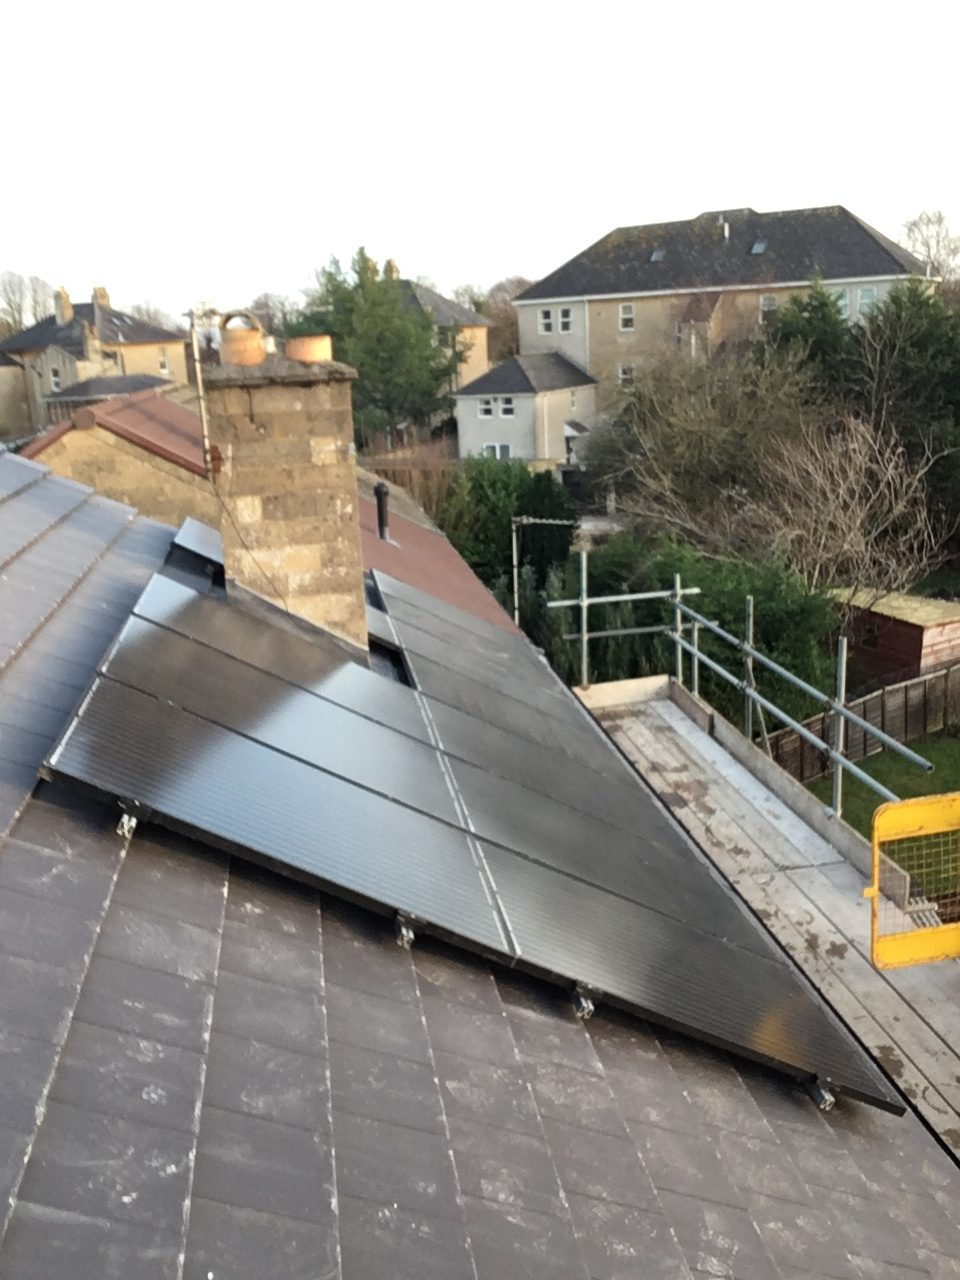 New roof with Marley Modern tiles before fitting new solar Modules